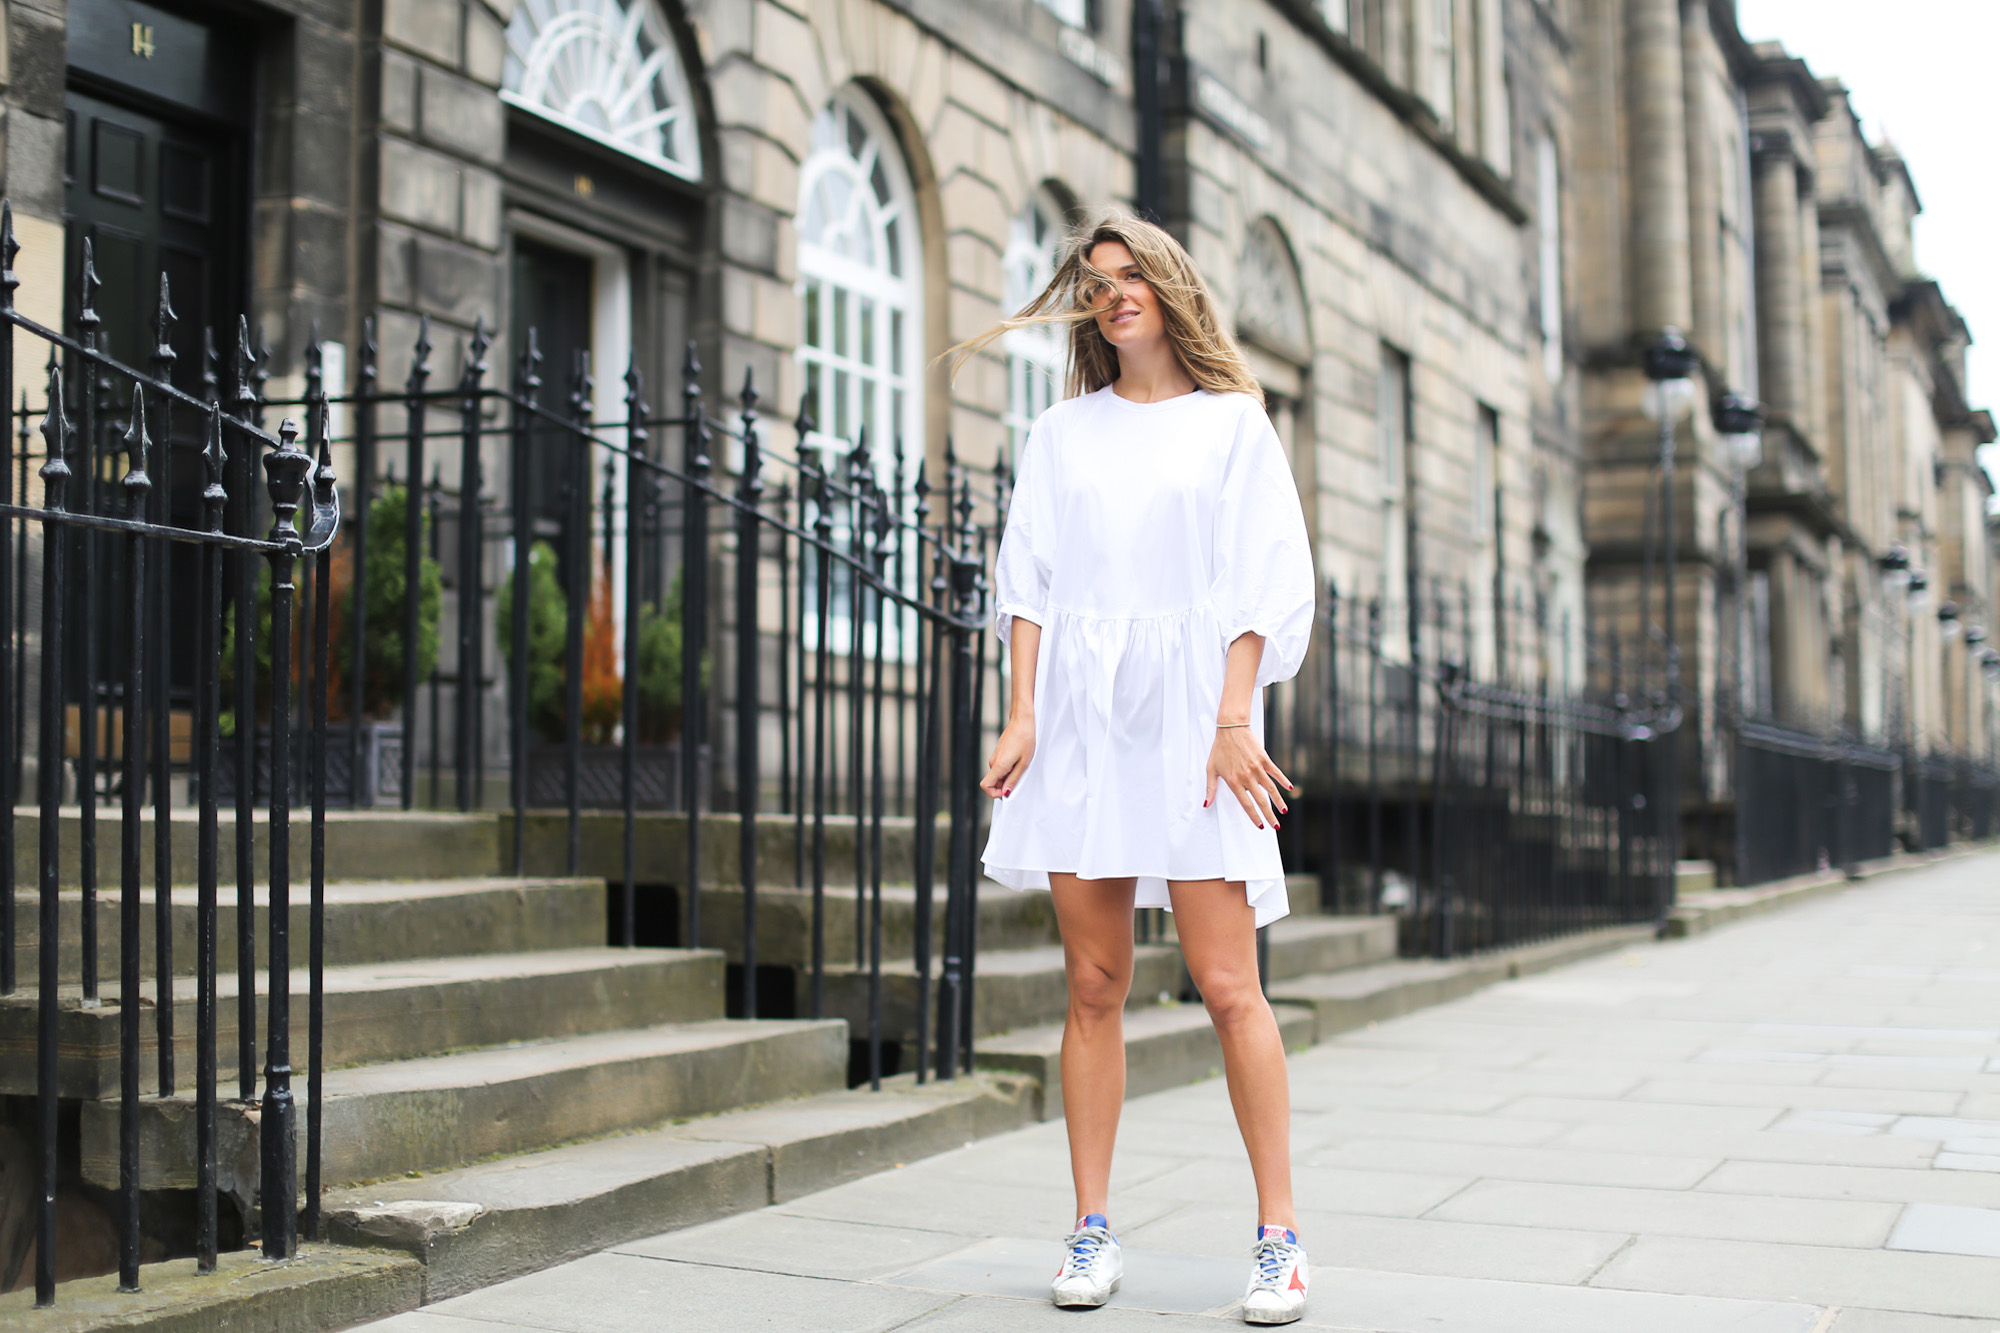 Clochet_streetstyle_zara_littlewhitedress_goldengoosedeluxesneakers_edinburgh-4